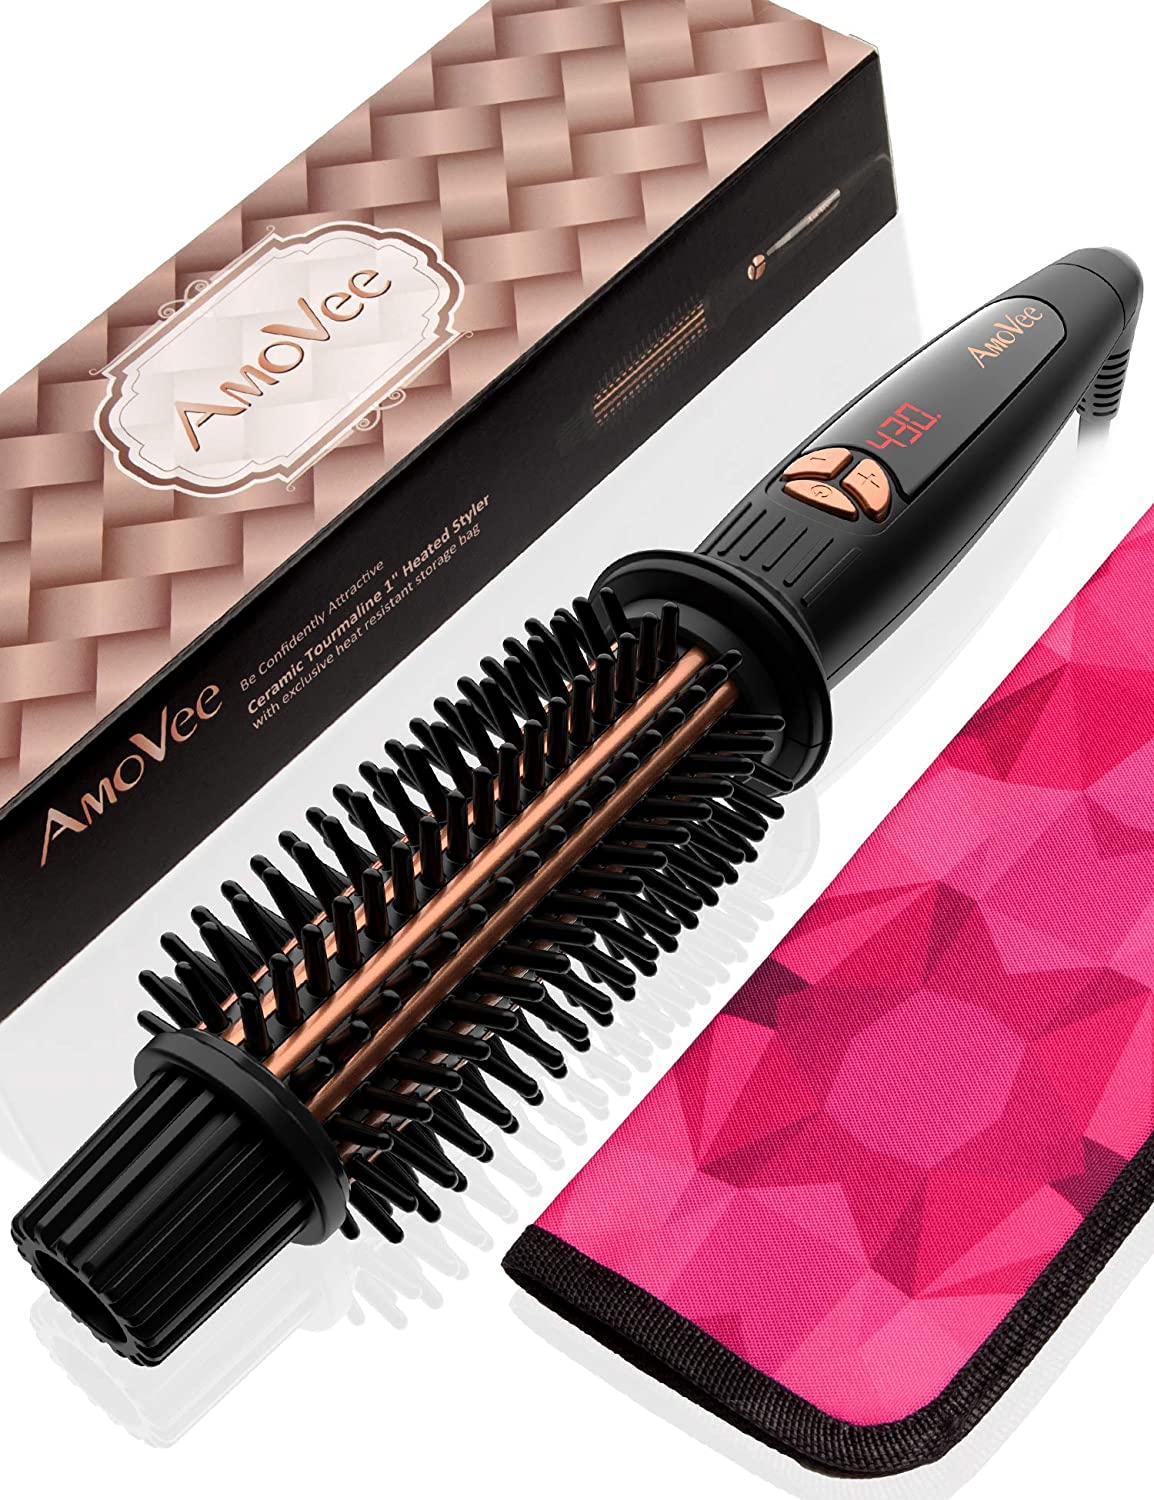 AmoVee Curling Iron Brush Ceramic